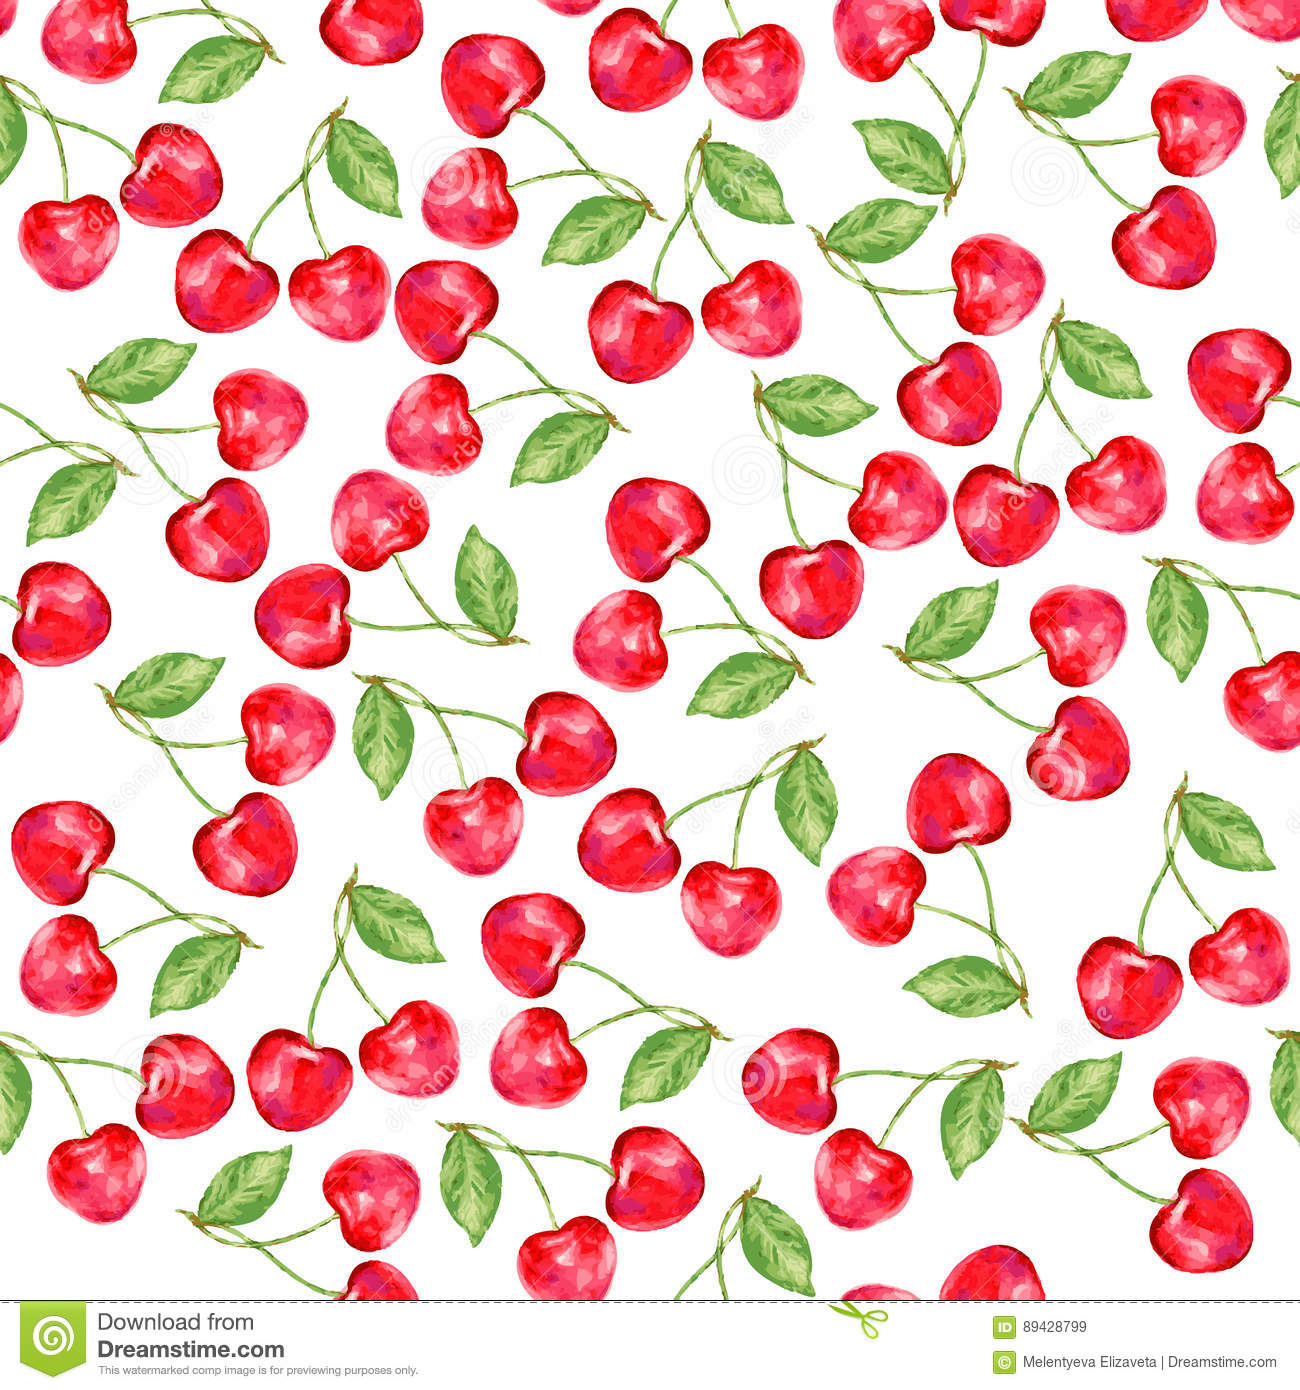 Watercolor cherry, Ornament with berry, Nature theme, Seamless pattern, Watercolor paint for gift box, wallpaper, backgroun